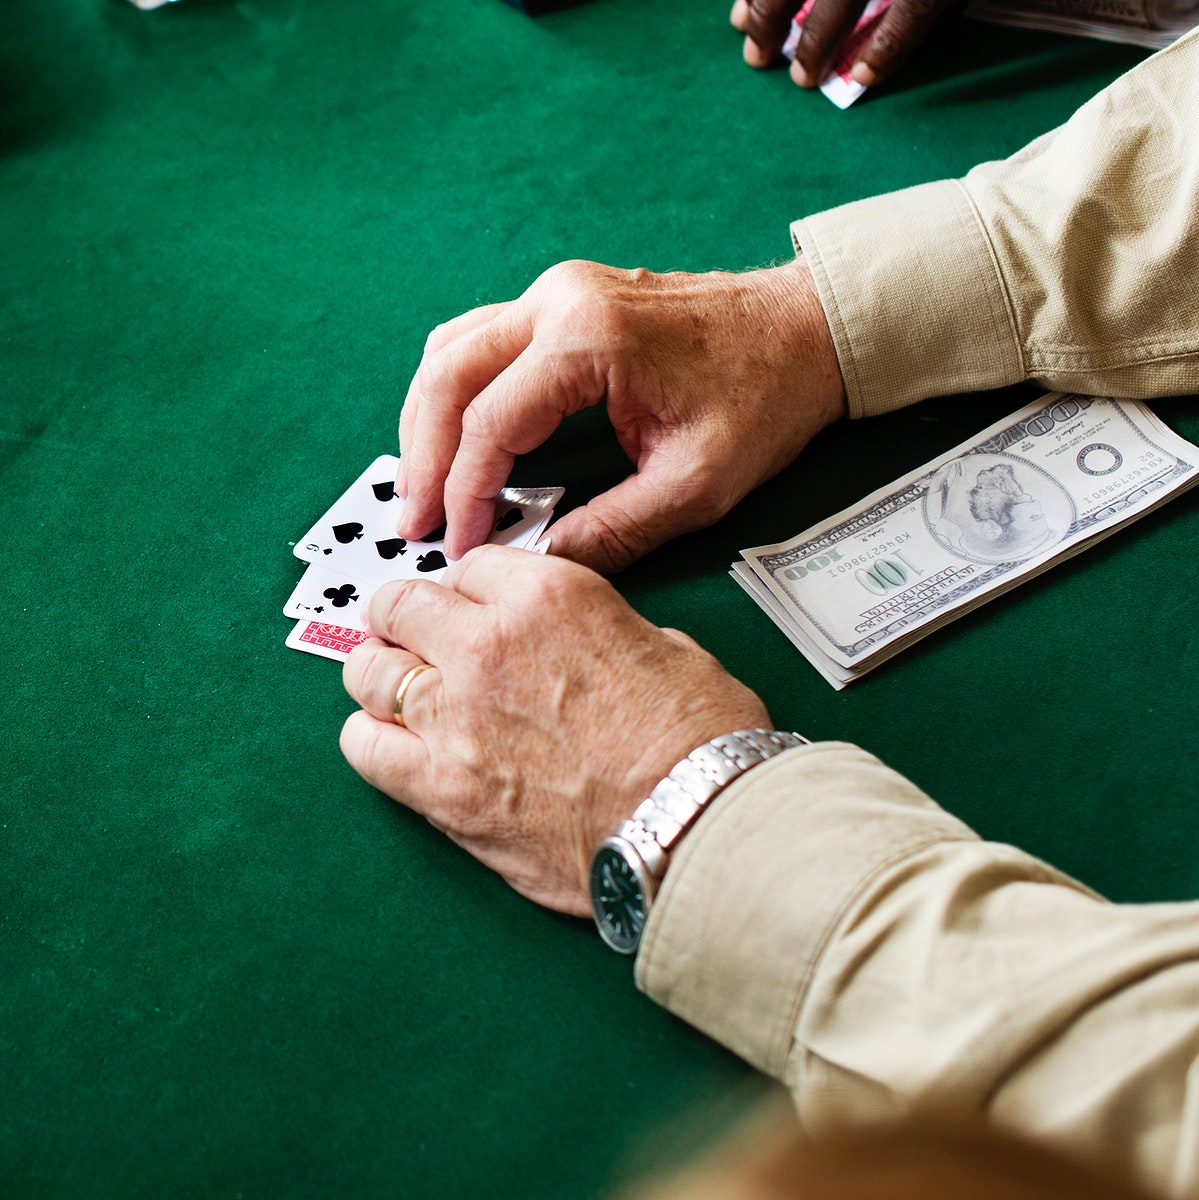 Adults socialising and playing cards